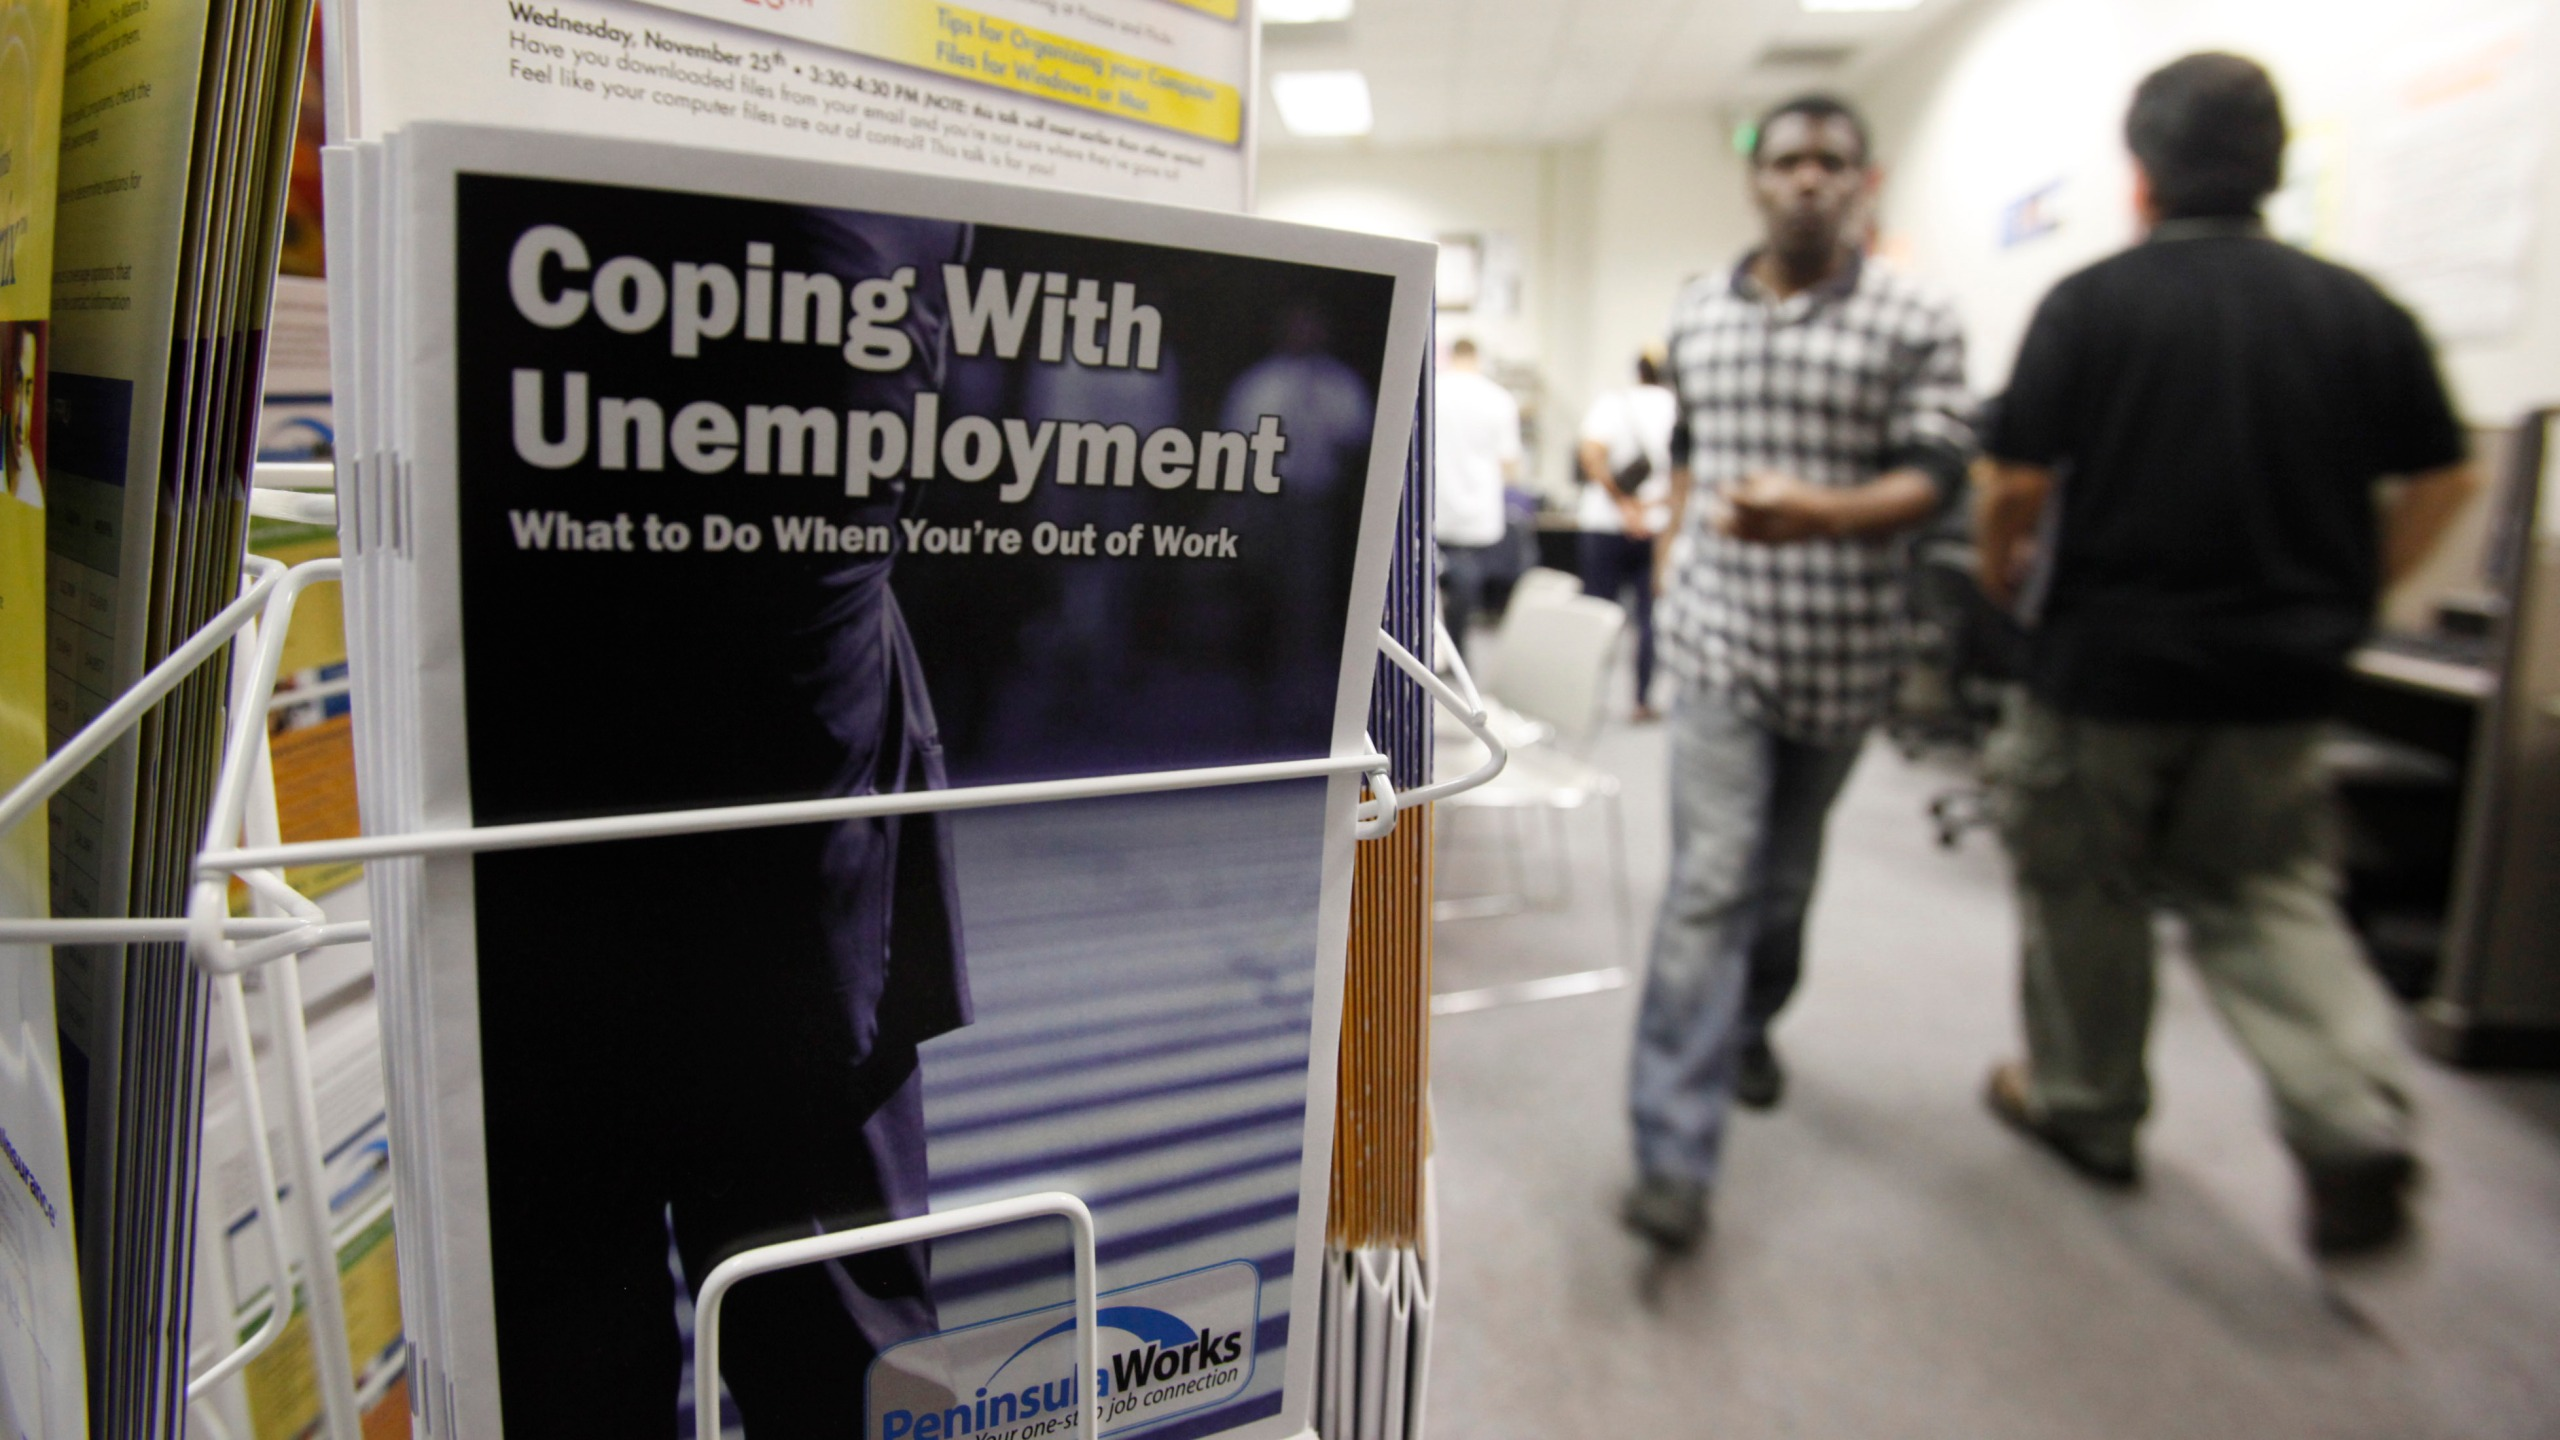 In this July 20, 2010 file photo, people arrive to seek employment opportunities at a JobTrain office in Menlo Park. (AP Photo/Paul Sakuma, File)